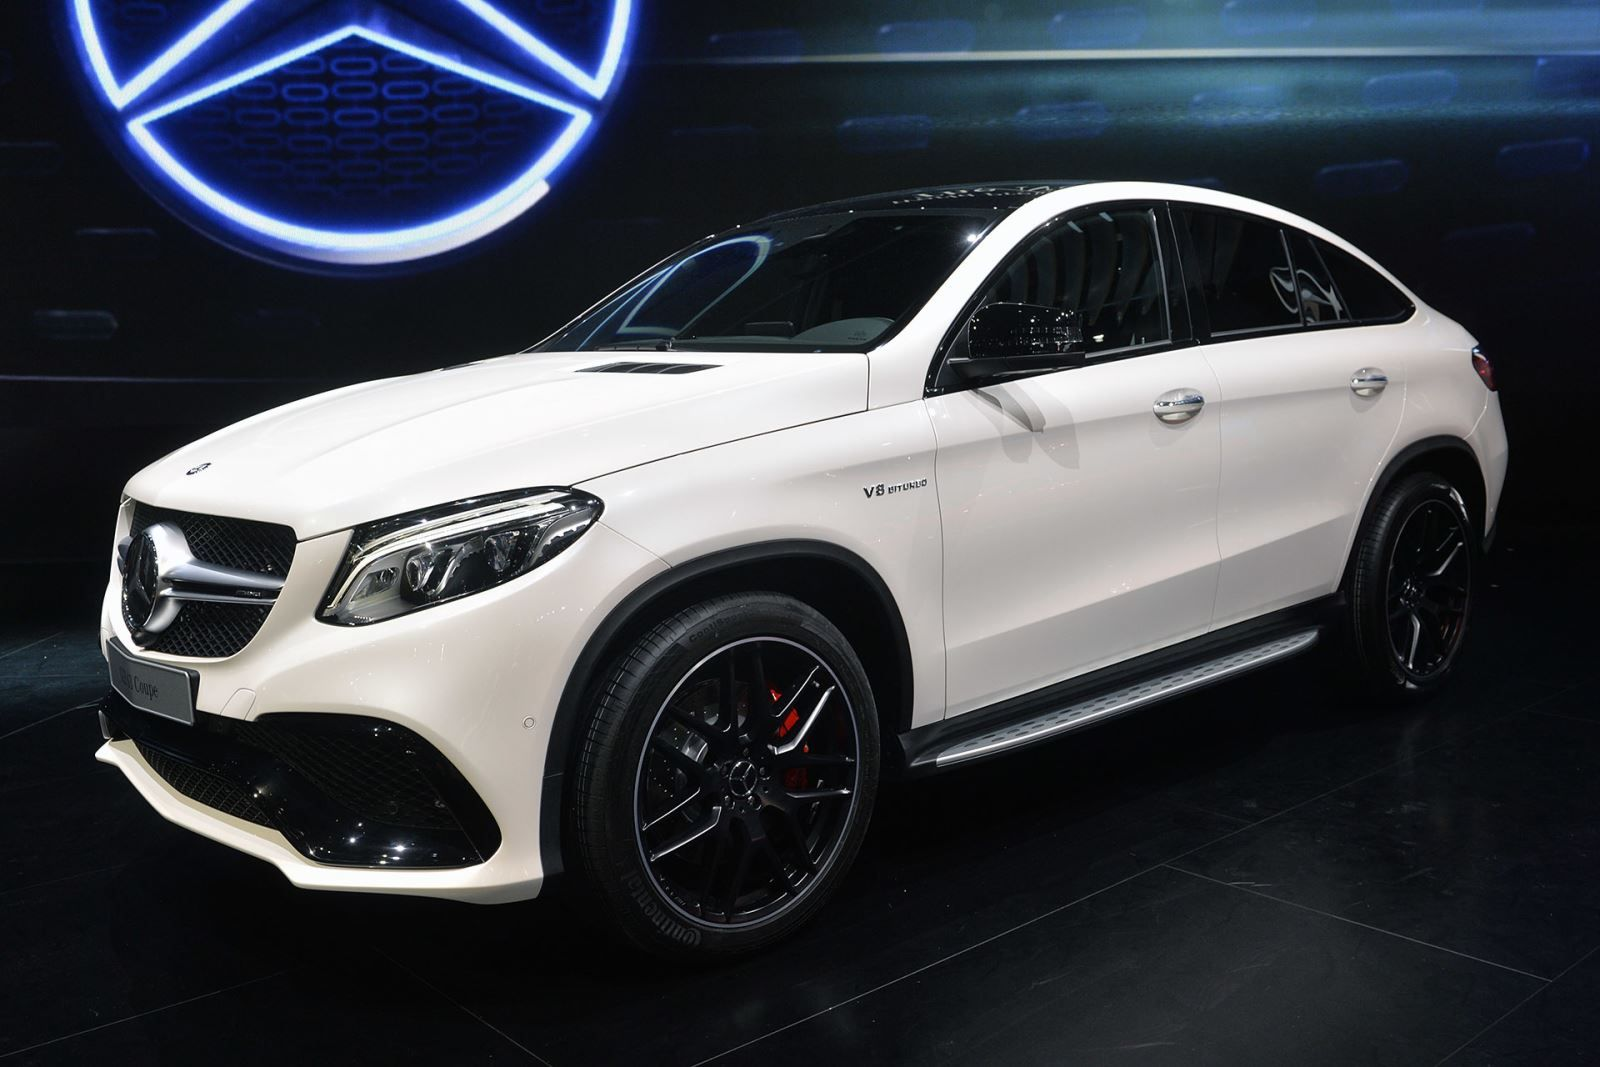 Mercedes benz gle coupe 450 amg and gle63 at 2015 for Mercedes benz amg hatchback price